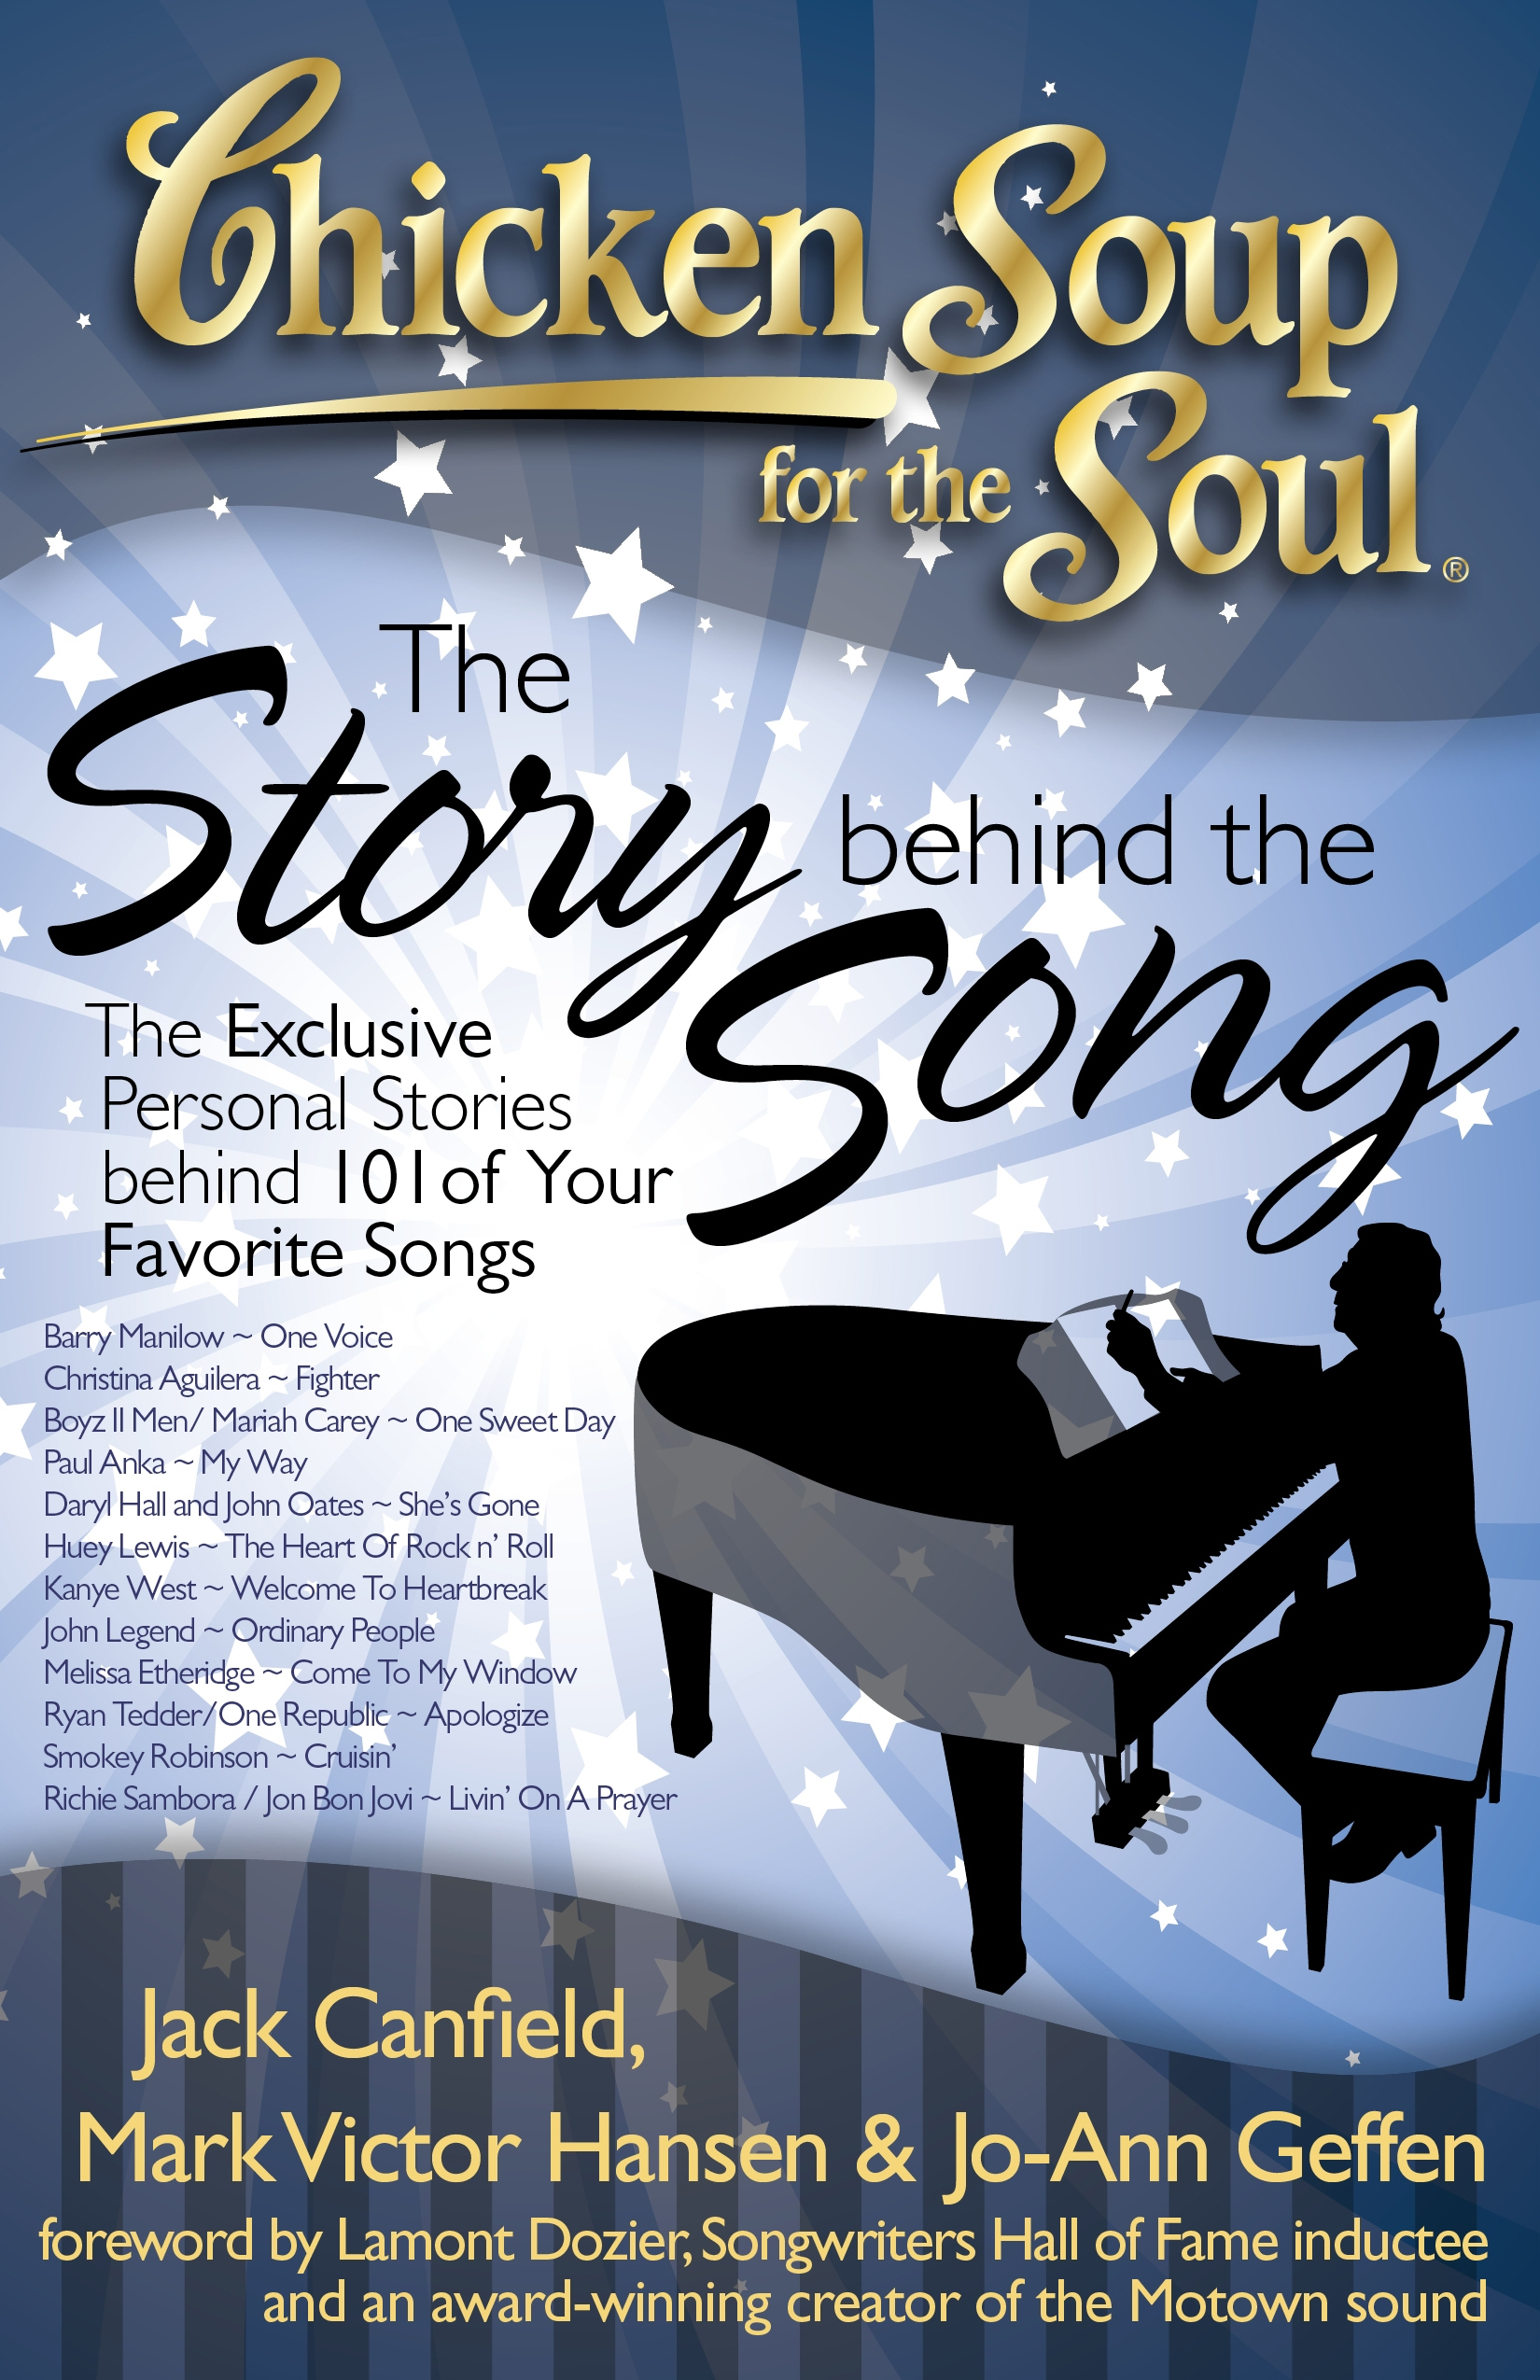 How to write a chicken soup for the soul story